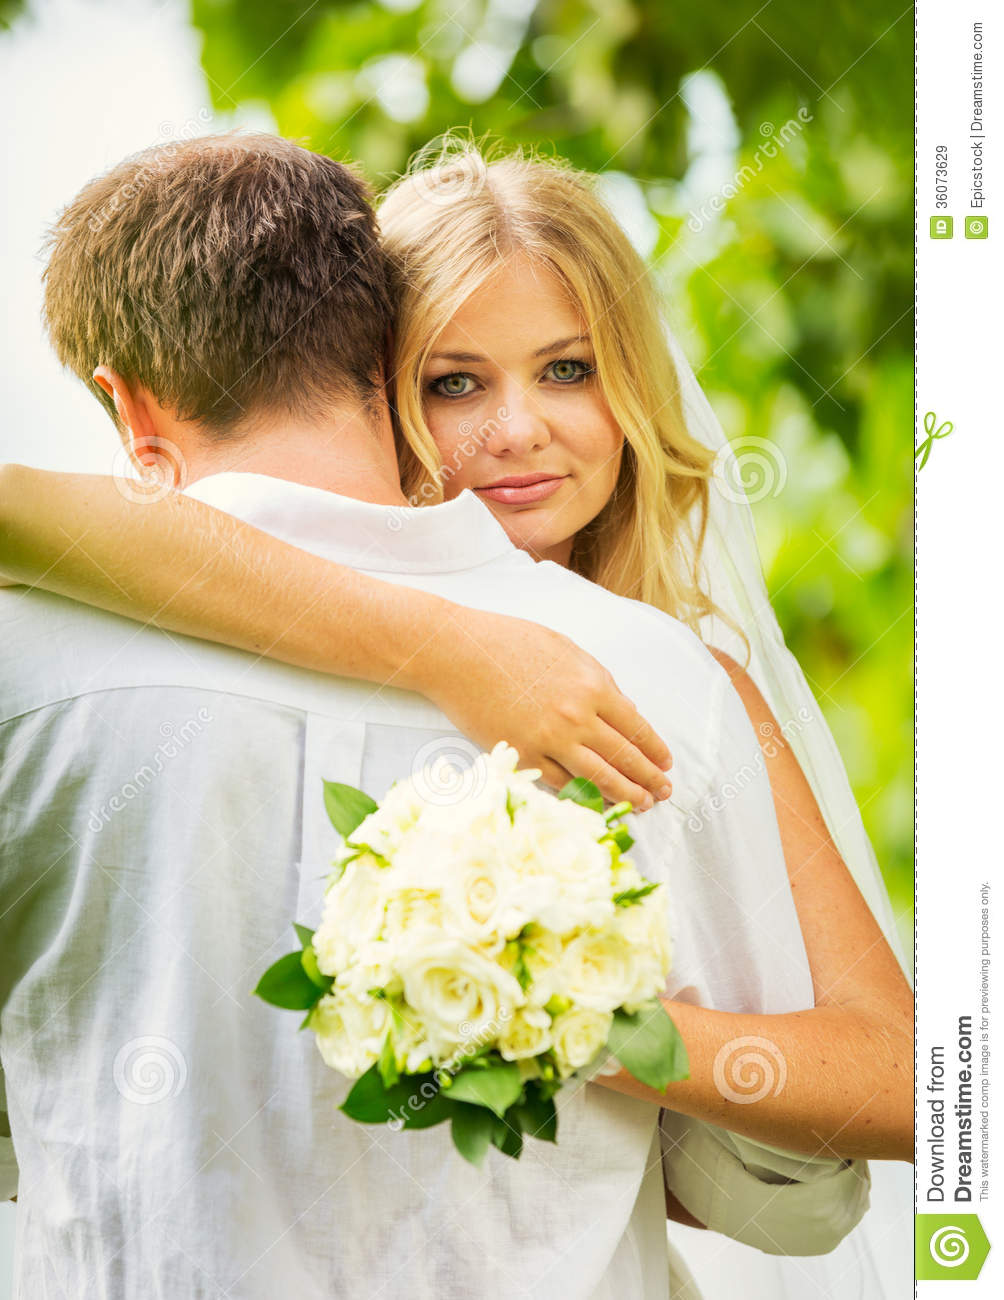 Bride and groom romantic newly married couple embracing stock bride and groom romantic newly married couple embracing kristyandbryce Image collections